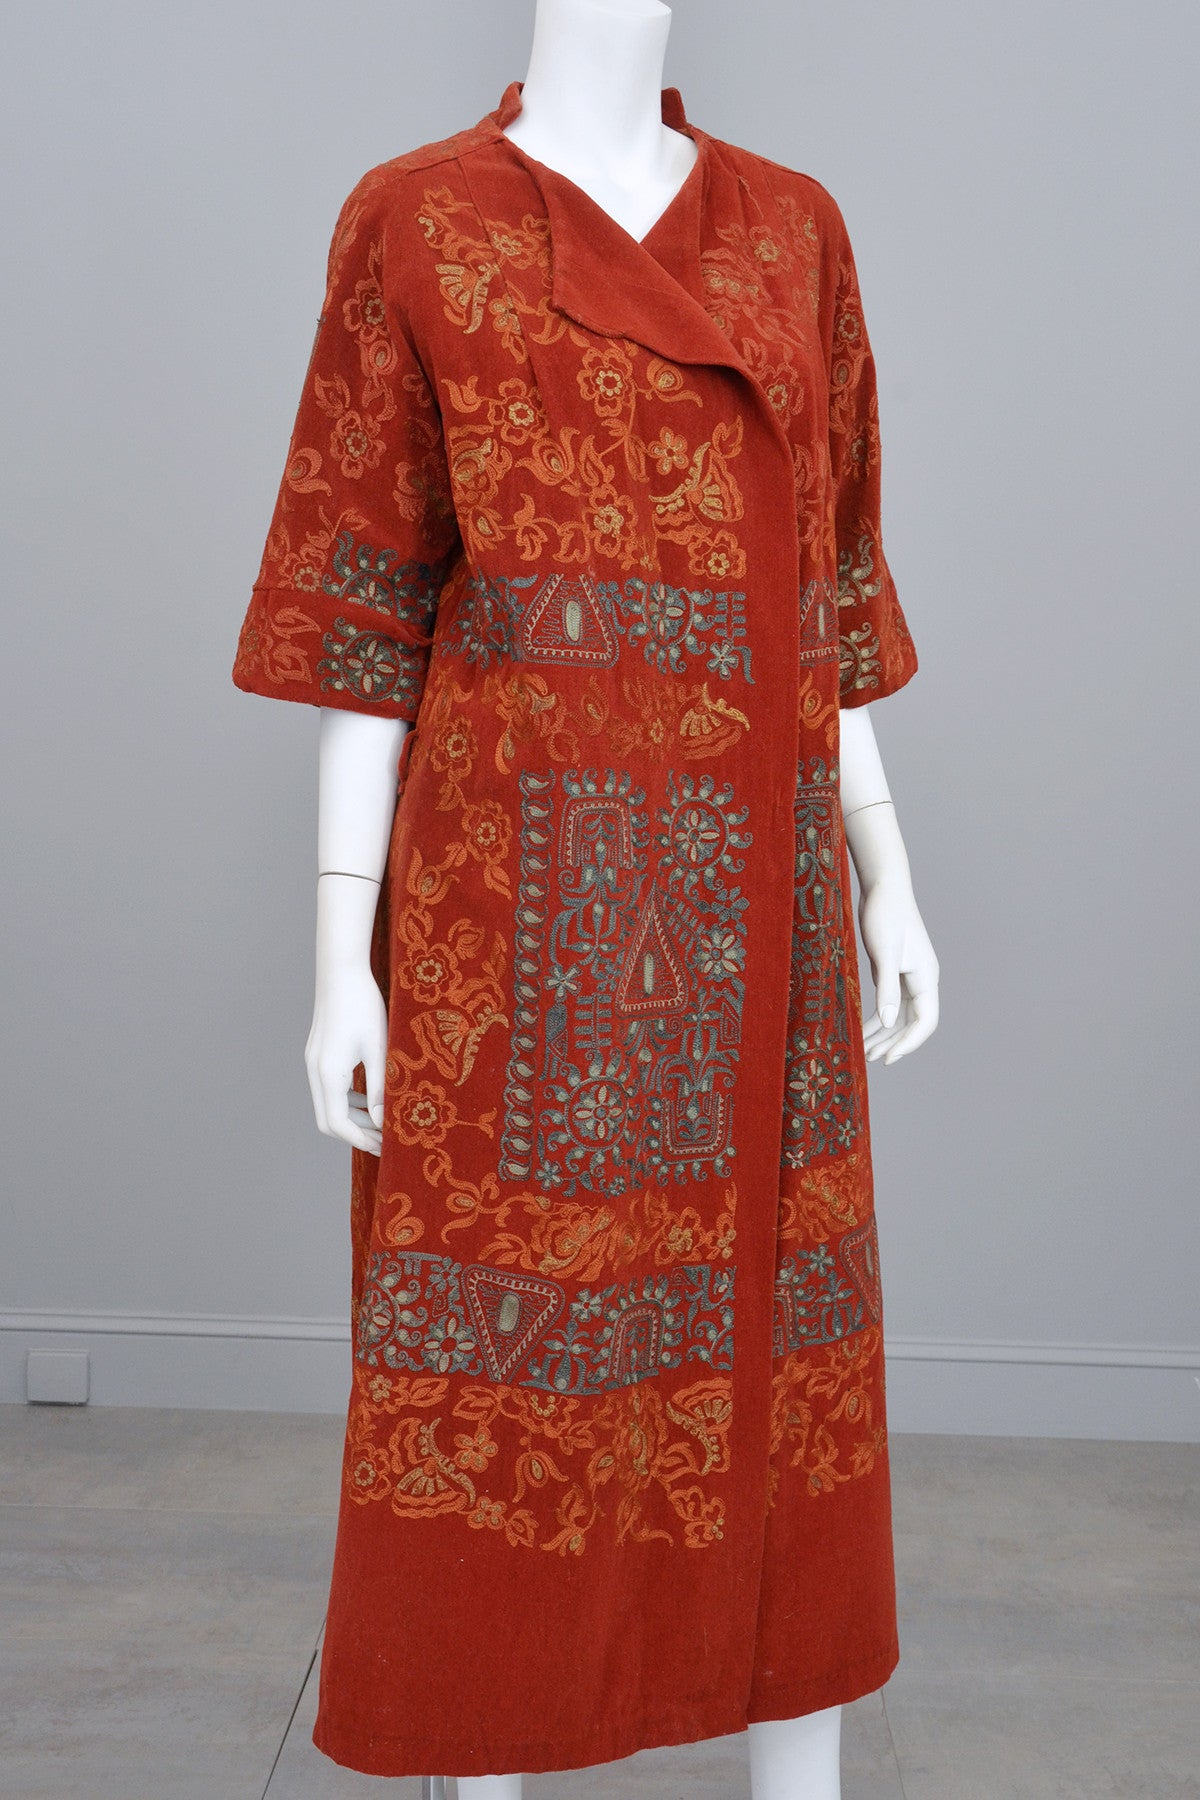 Aqua Embroidered Paprika Red Velveteen Corduroy Vintage Duster Coat